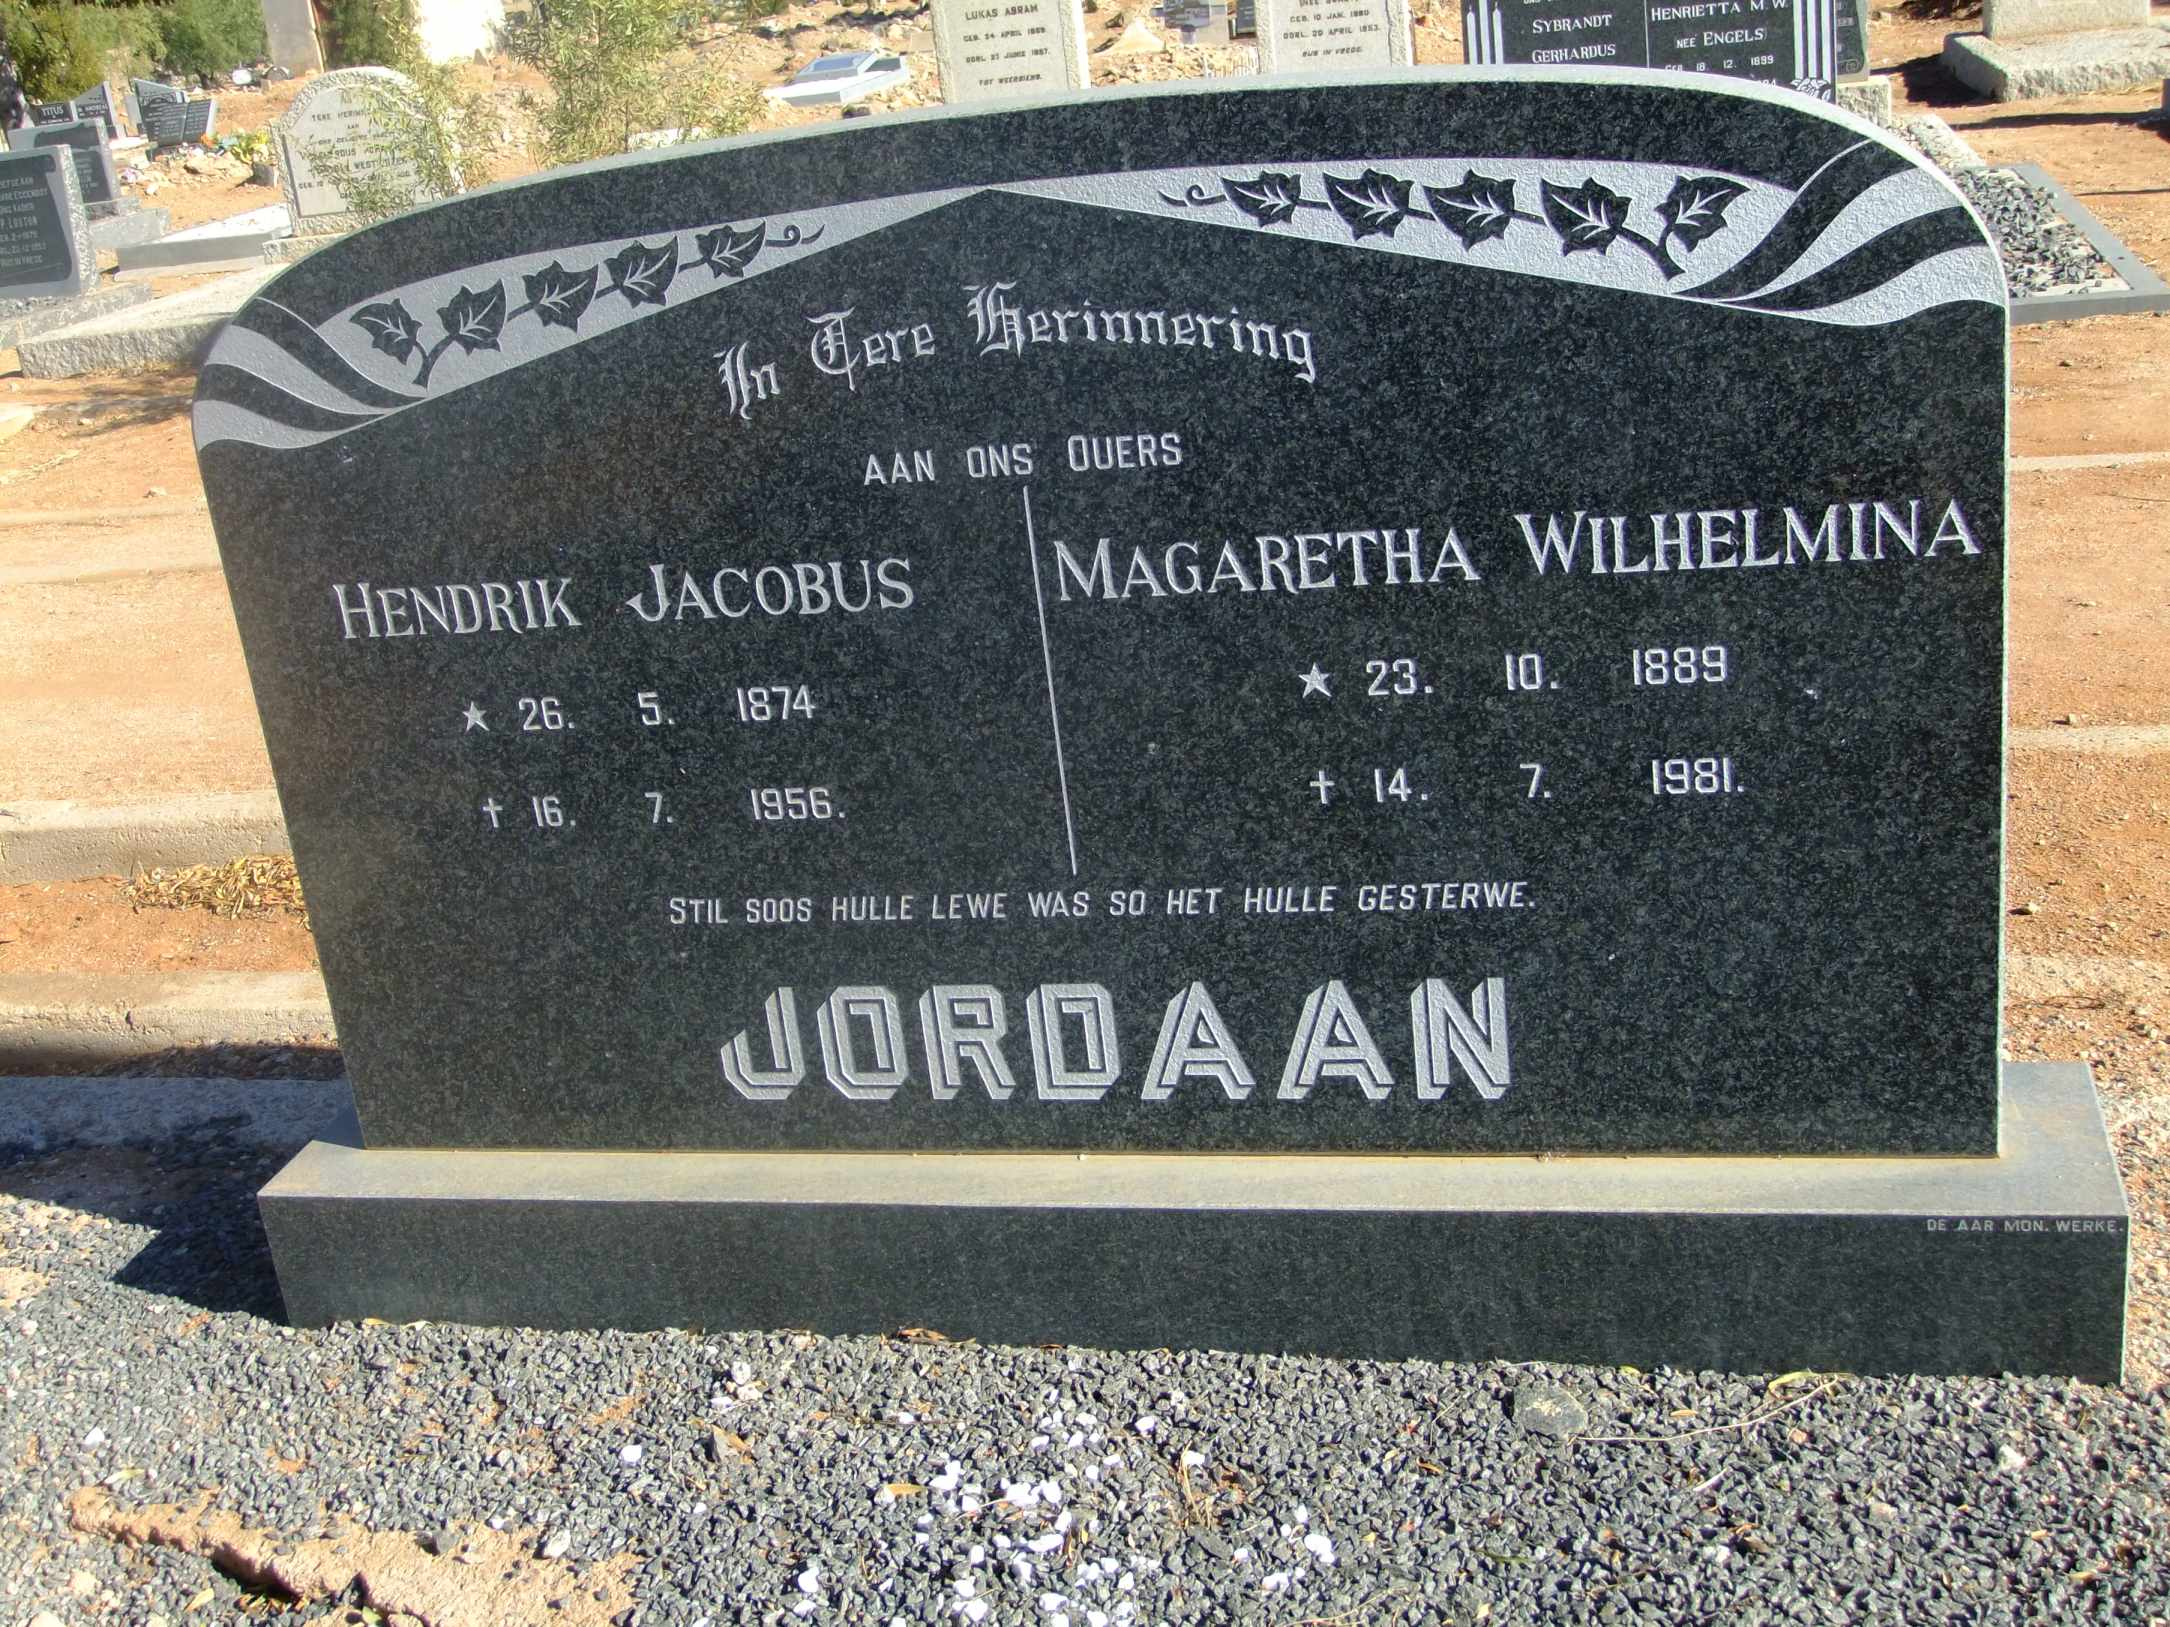 Jordaan, Hendrik Jacobus born 26 May 1874 died 16 July 1956 and Magaretha Wilhelmina born 23 October 1889 died 14 July 1981